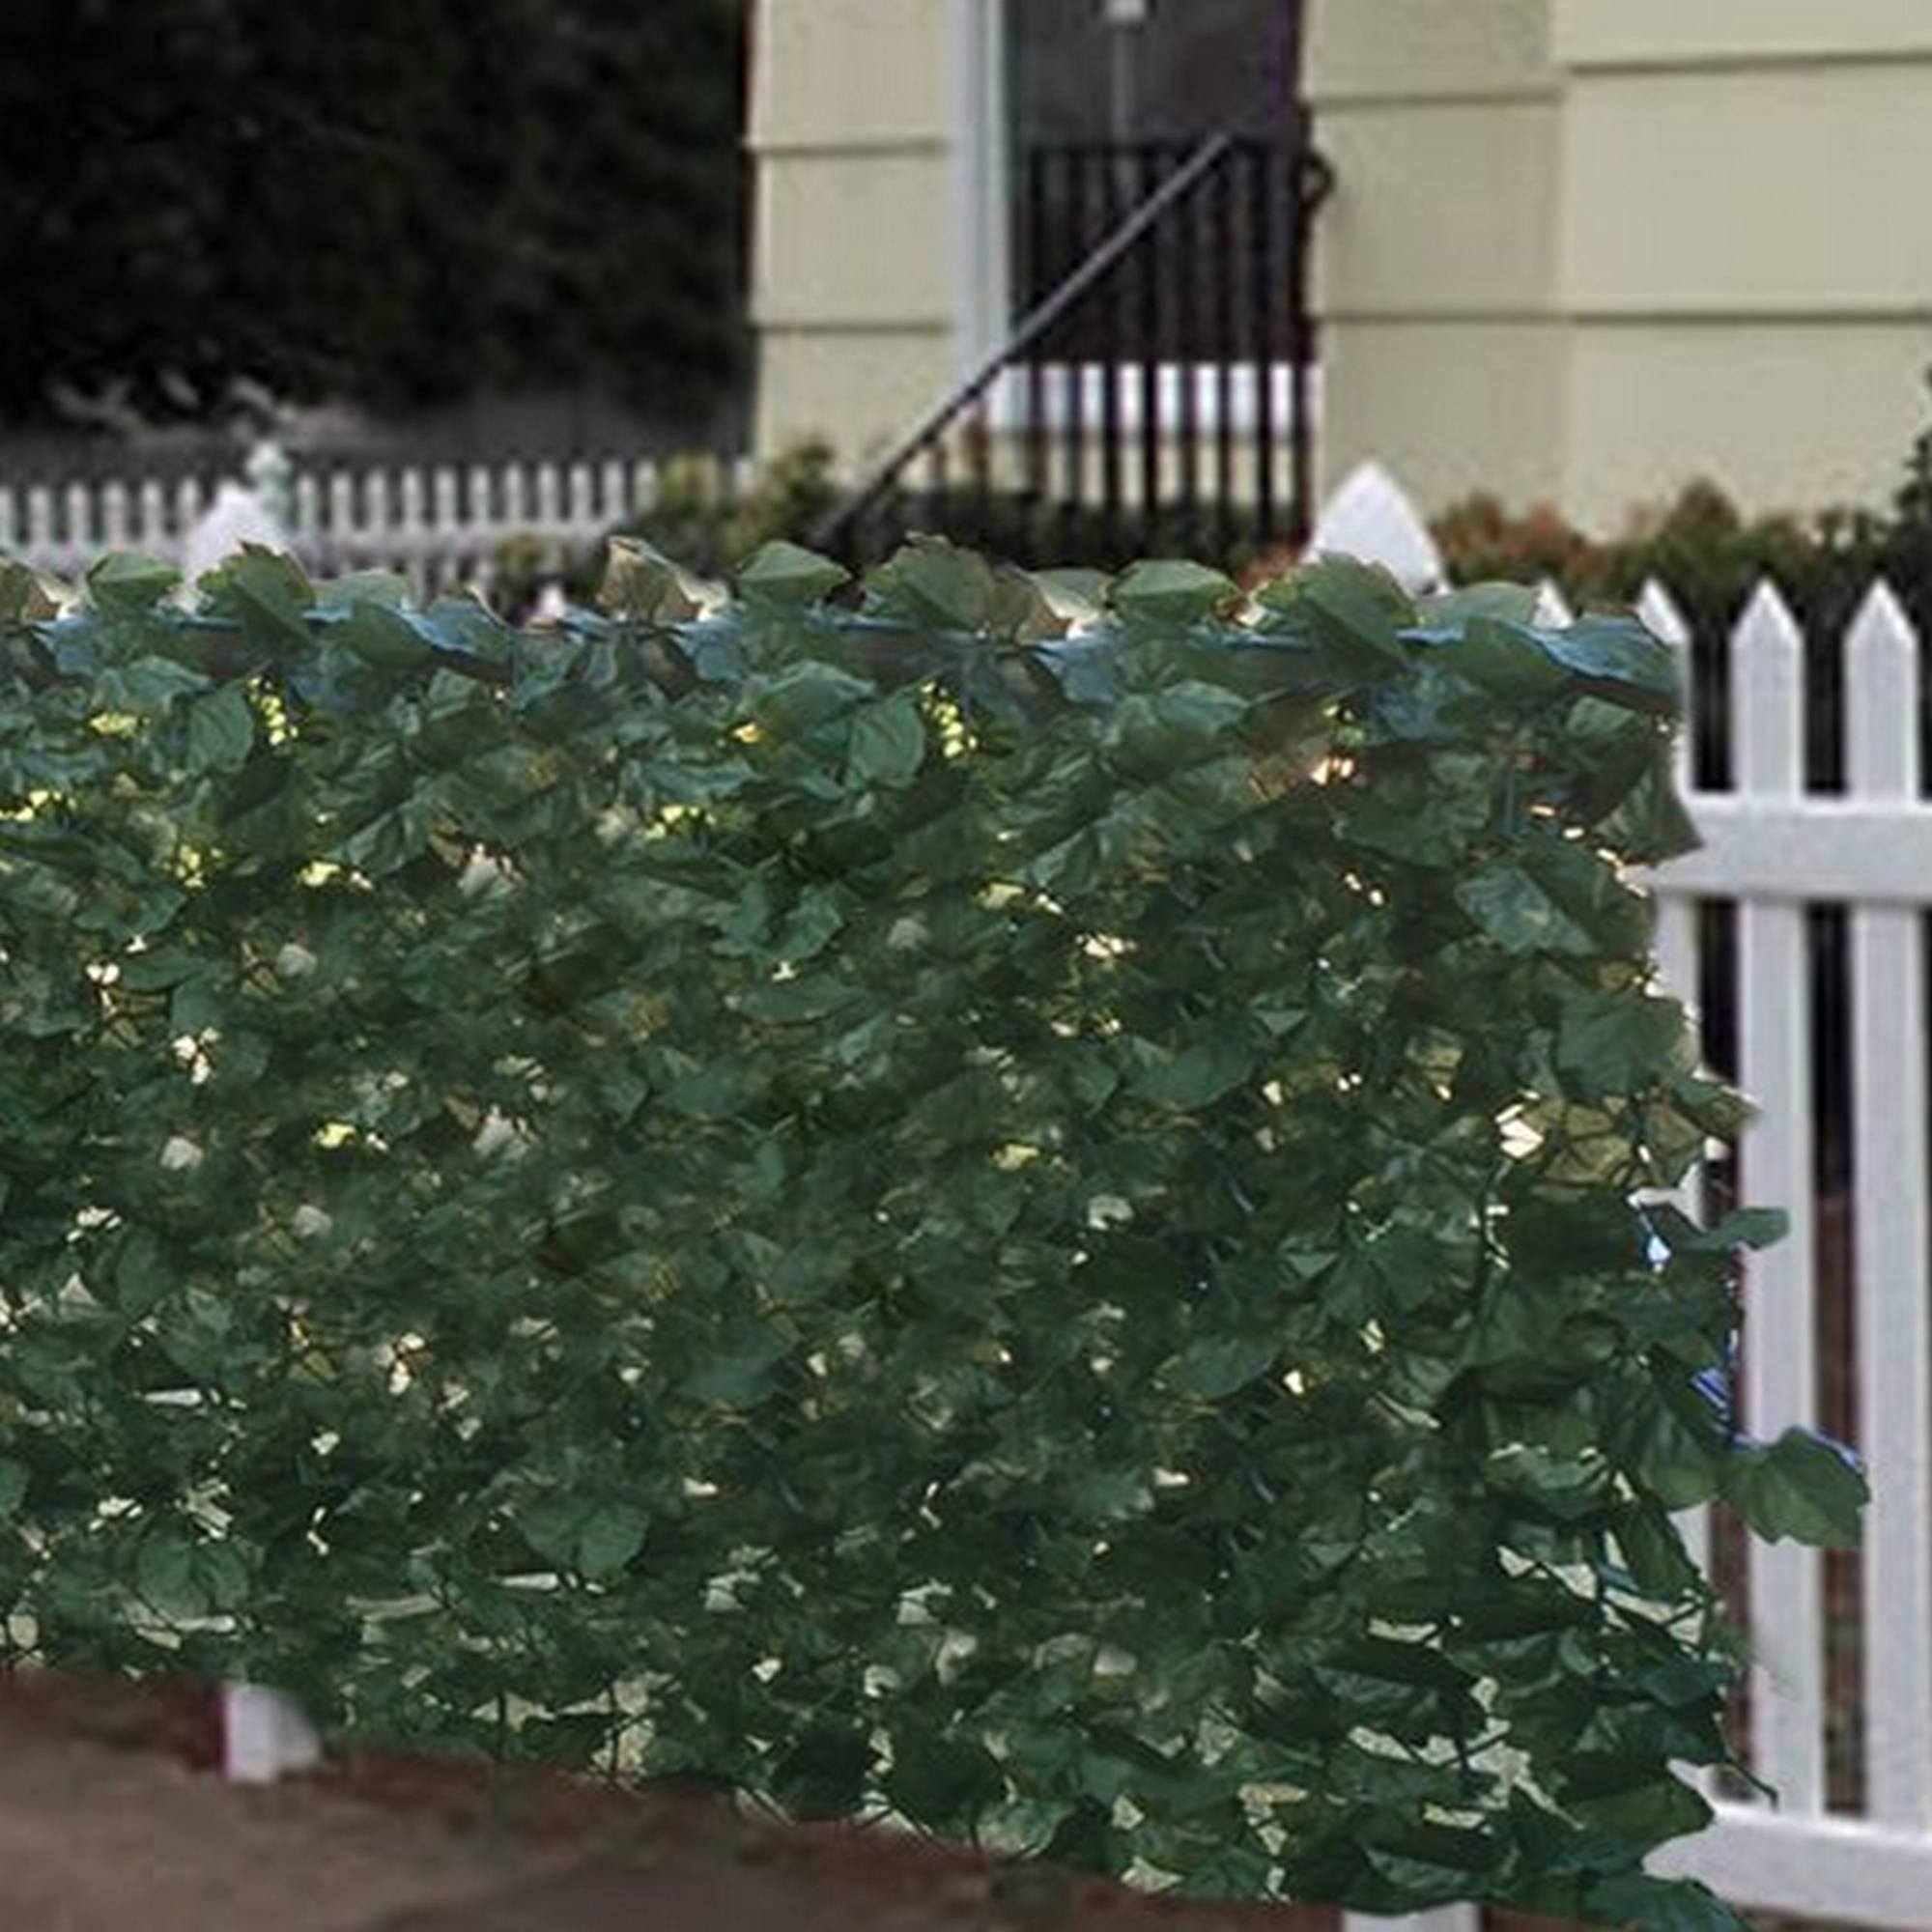 Aleko Privacy Fence Screen - Artificial Hedge - 94 x 39 Inches - Faux Ivy